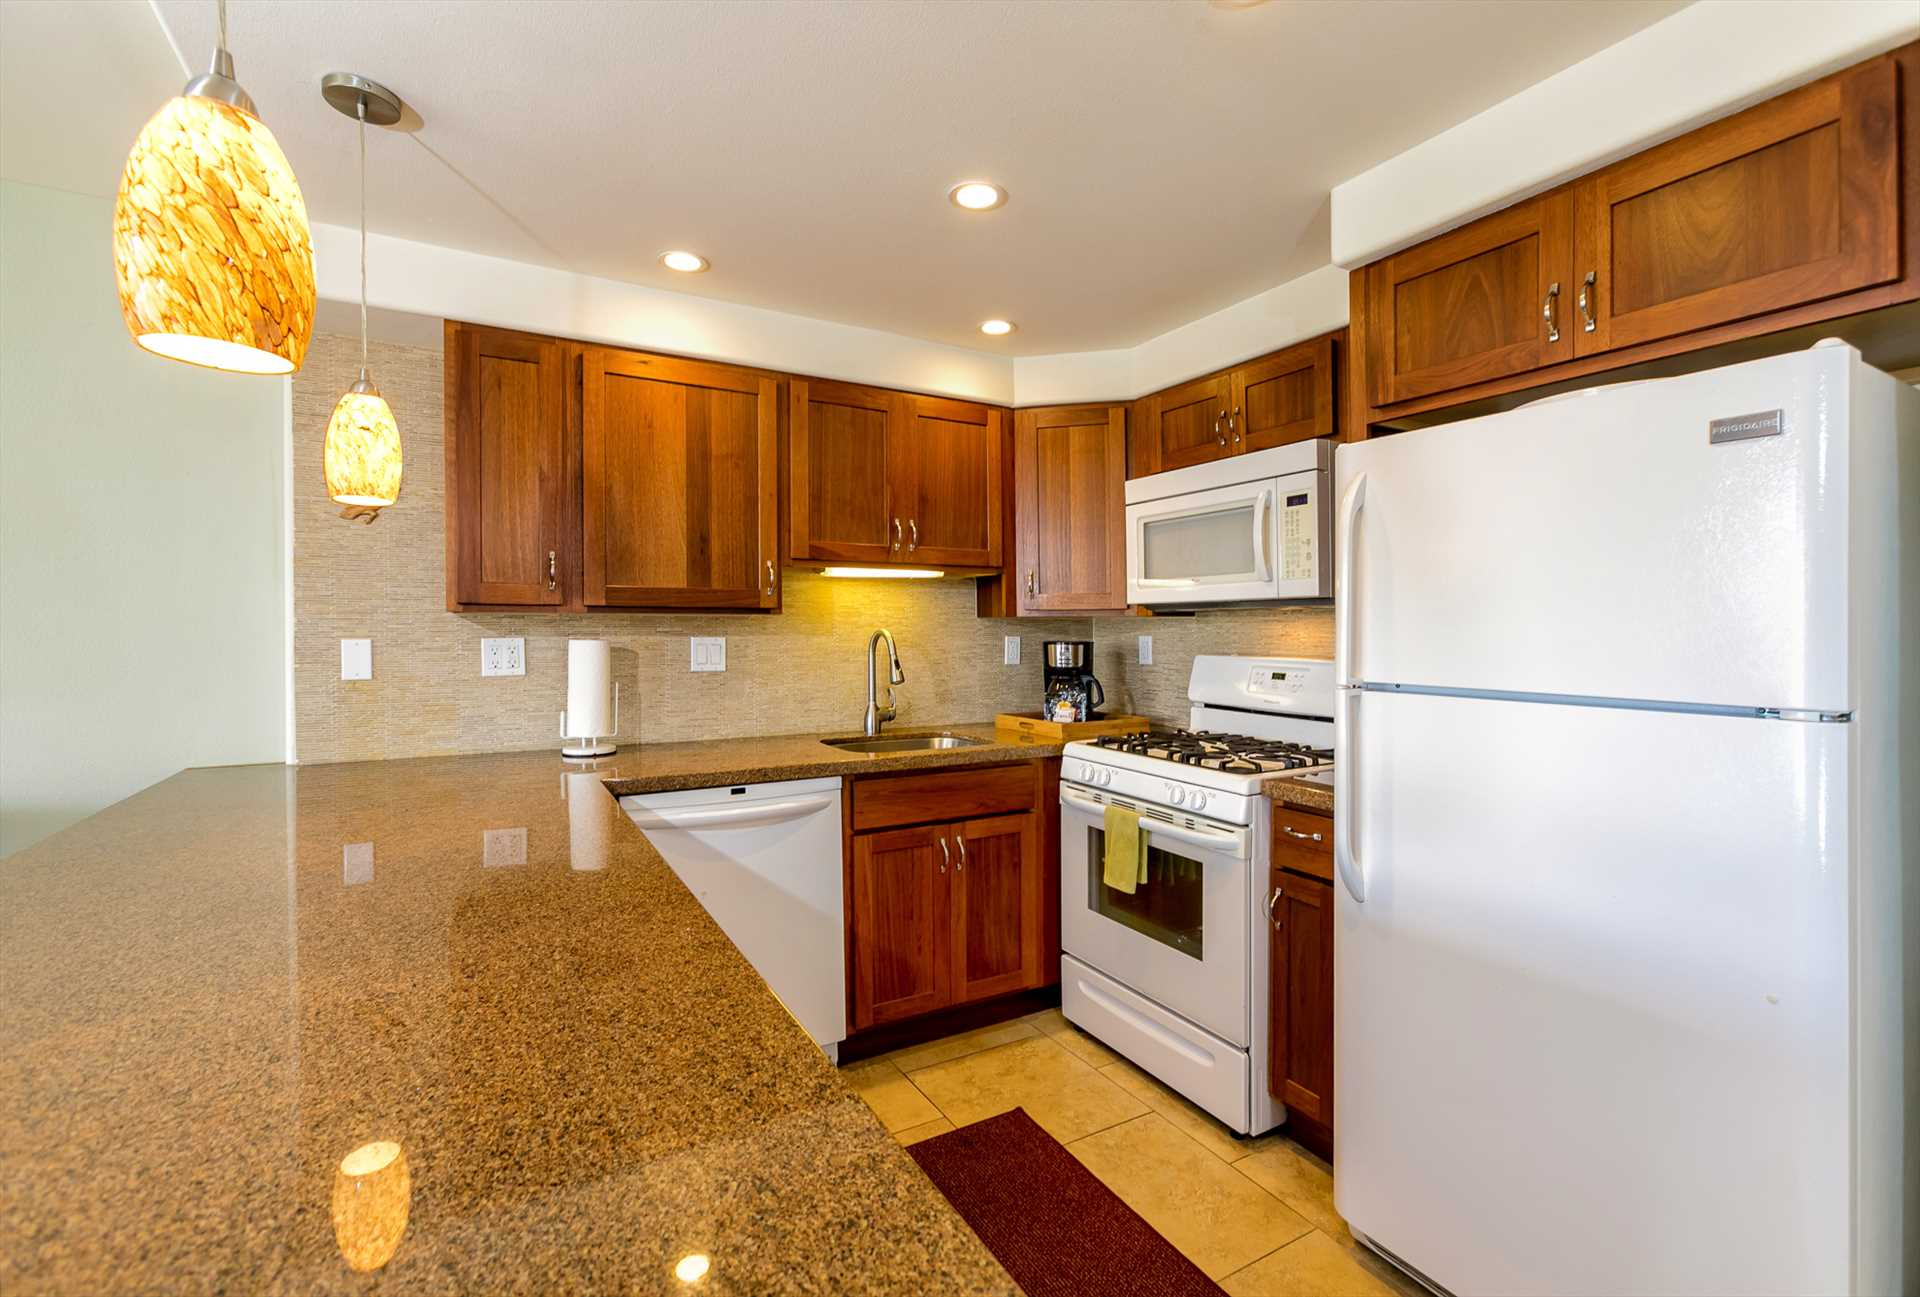 Well-appointed kitchen with everything to make C405 your hom